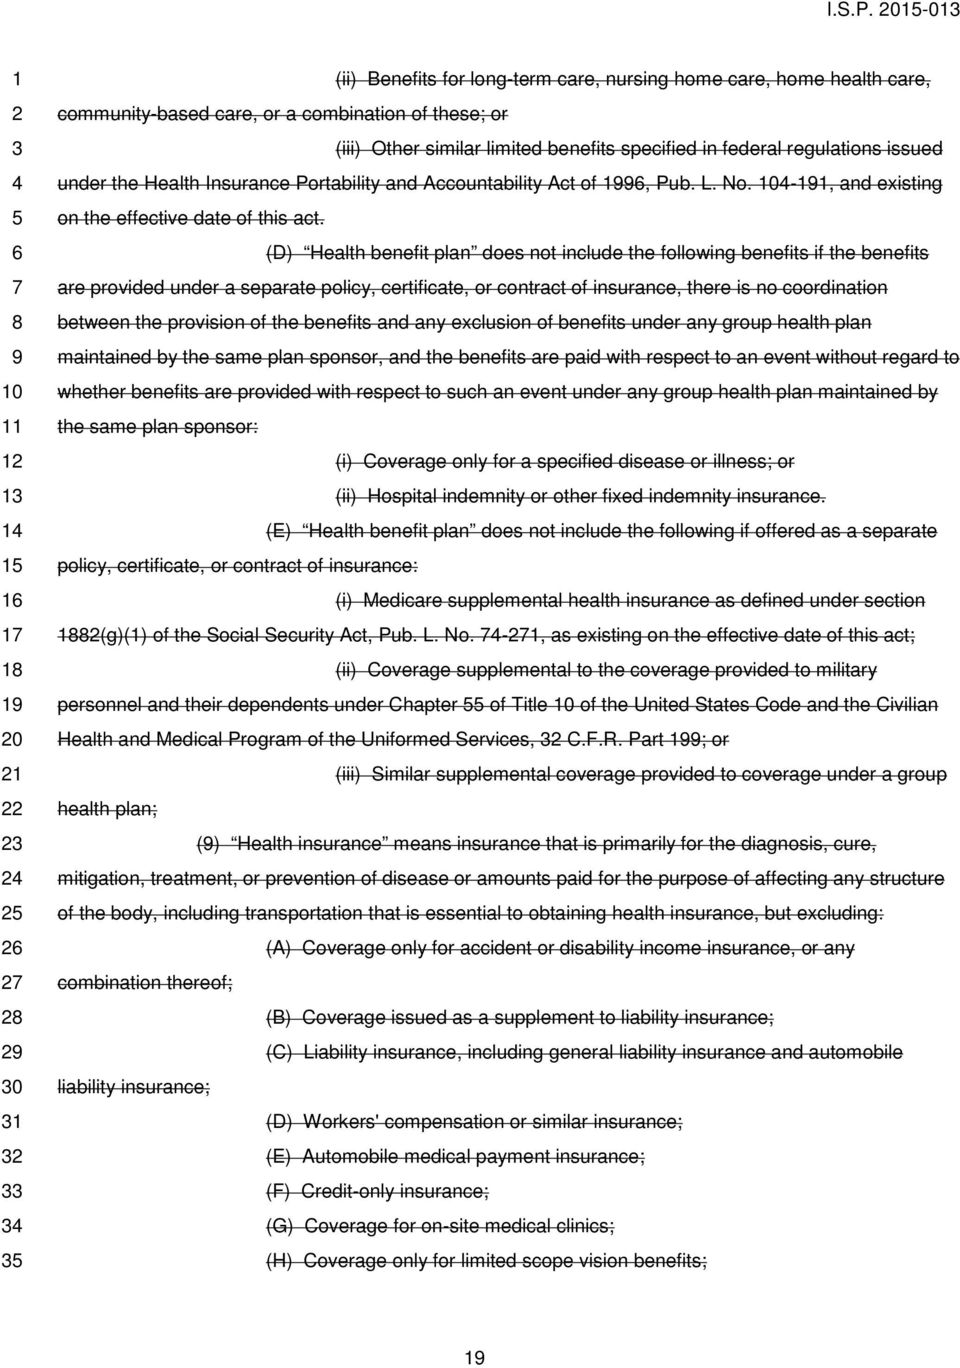 regulations issued under the Health Insurance Portability and Accountability Act of, Pub. L. No. -, and existing on the effective date of this act.